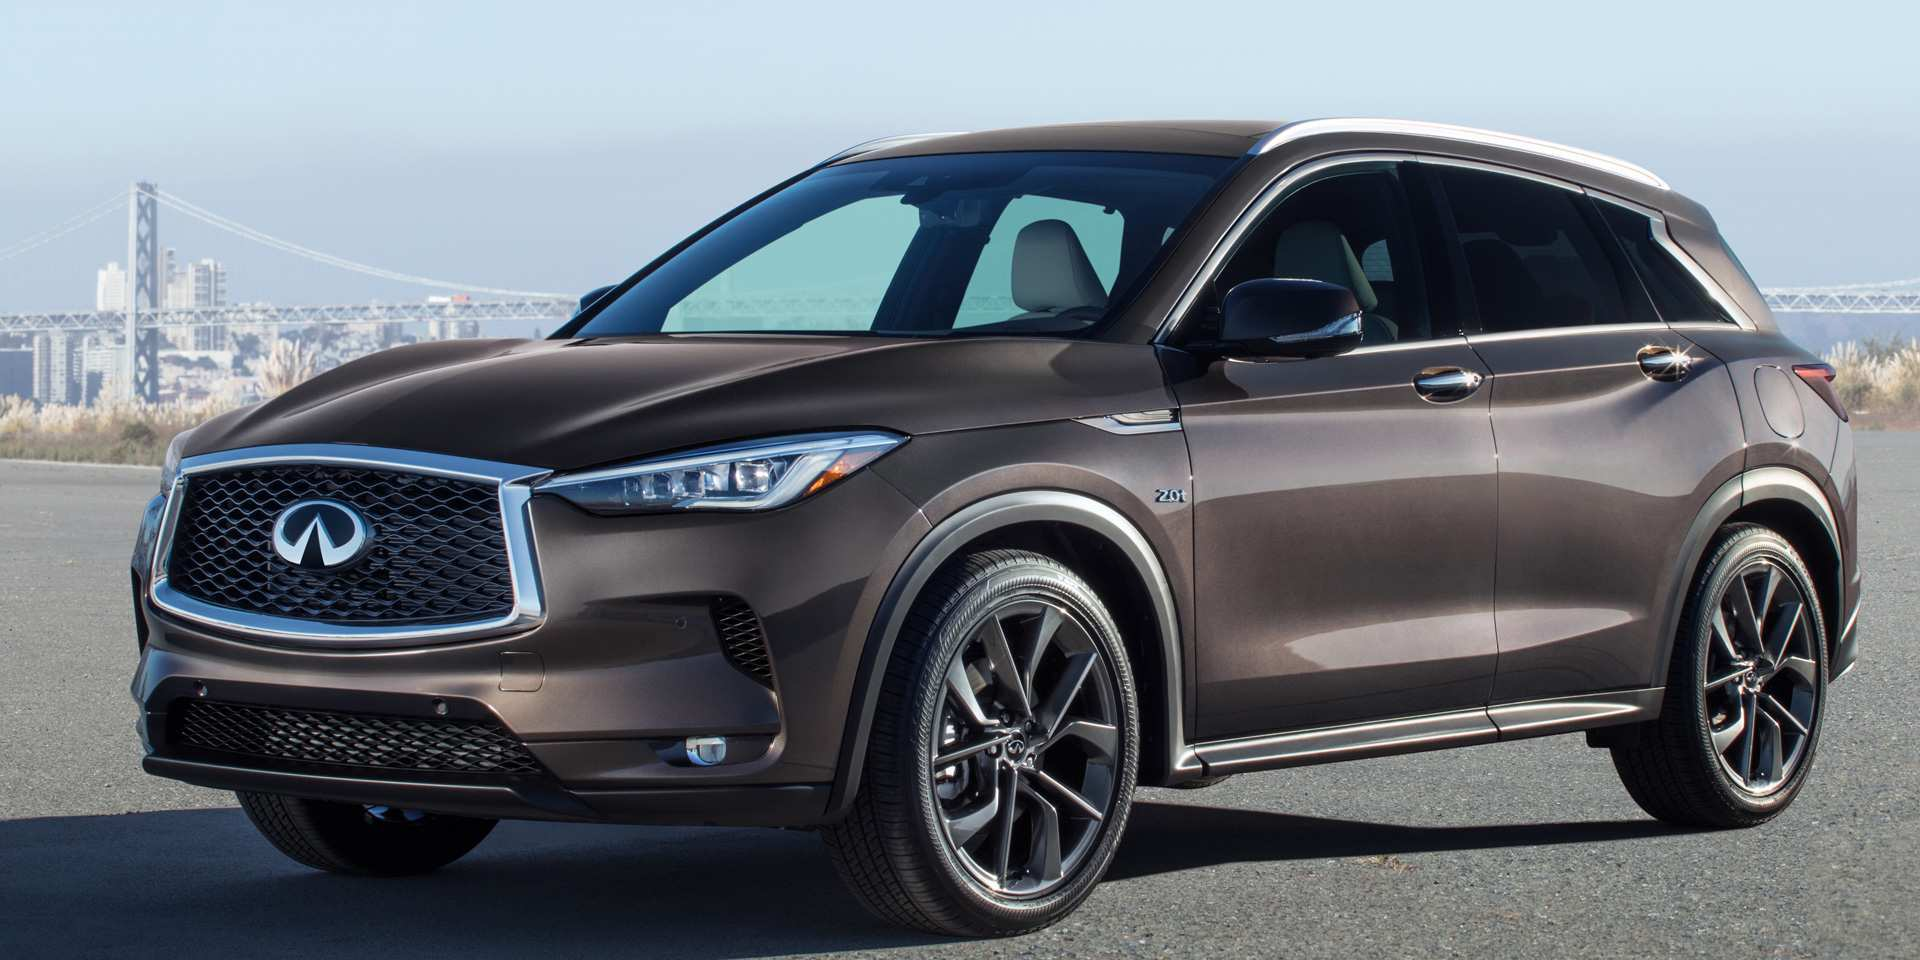 83 Gallery of The Infiniti Qx50 2019 Hybrid Concept Prices by The Infiniti Qx50 2019 Hybrid Concept